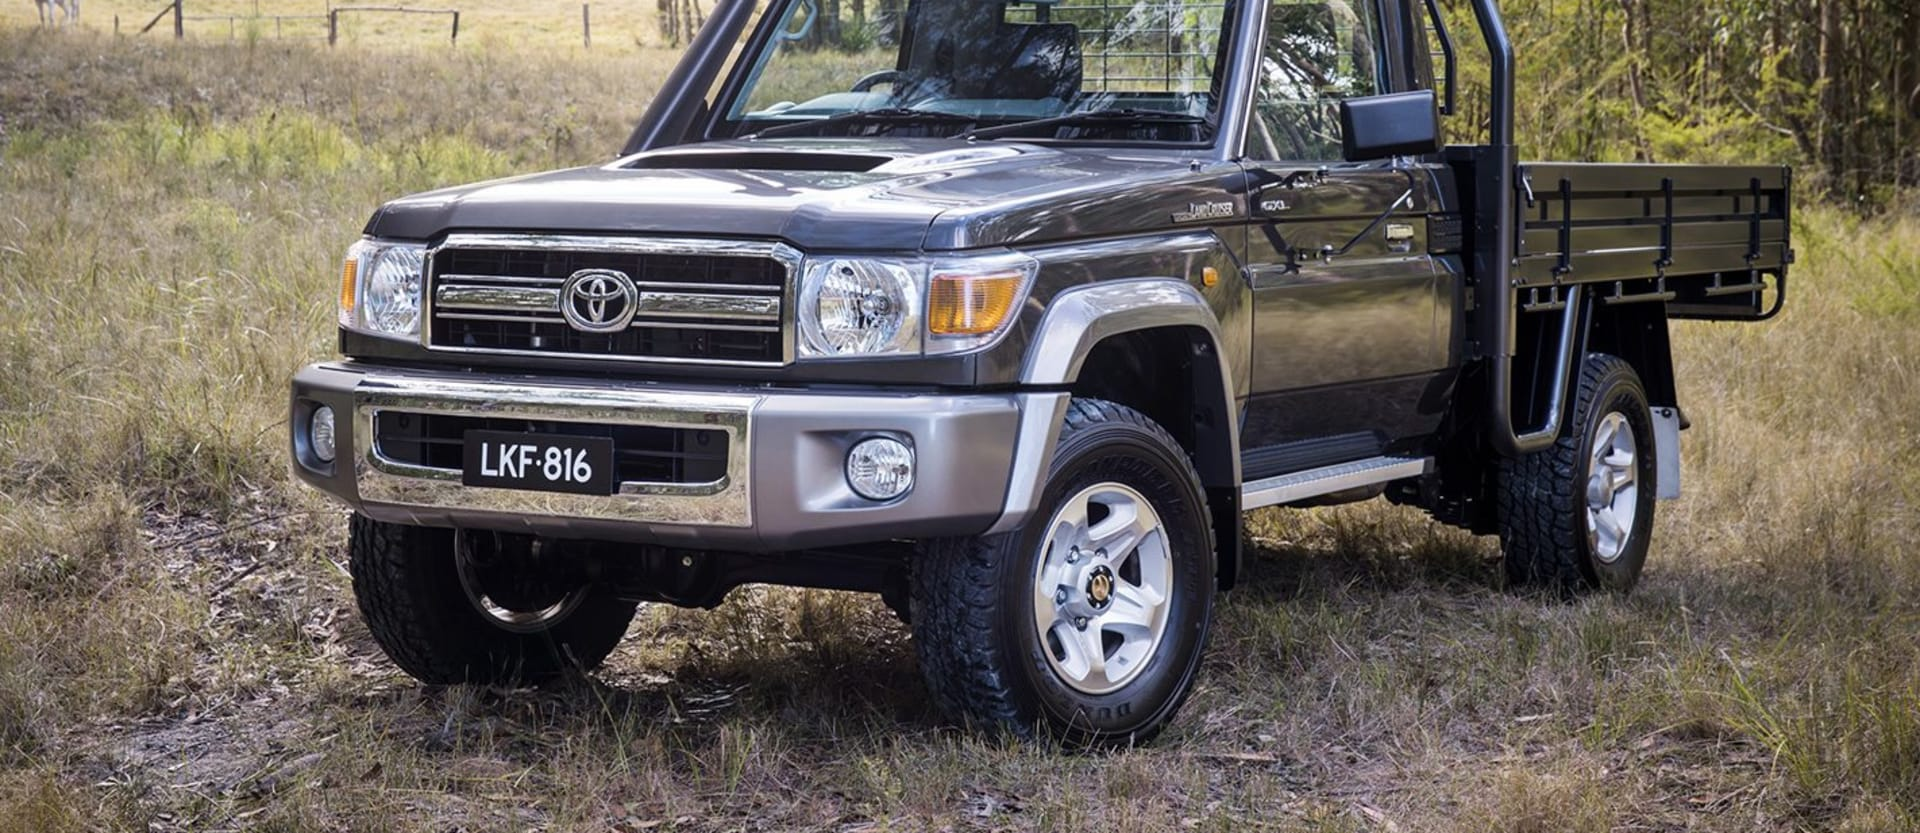 Toyota LandCruiser 70 Series receives updates ahead of Q4 launch